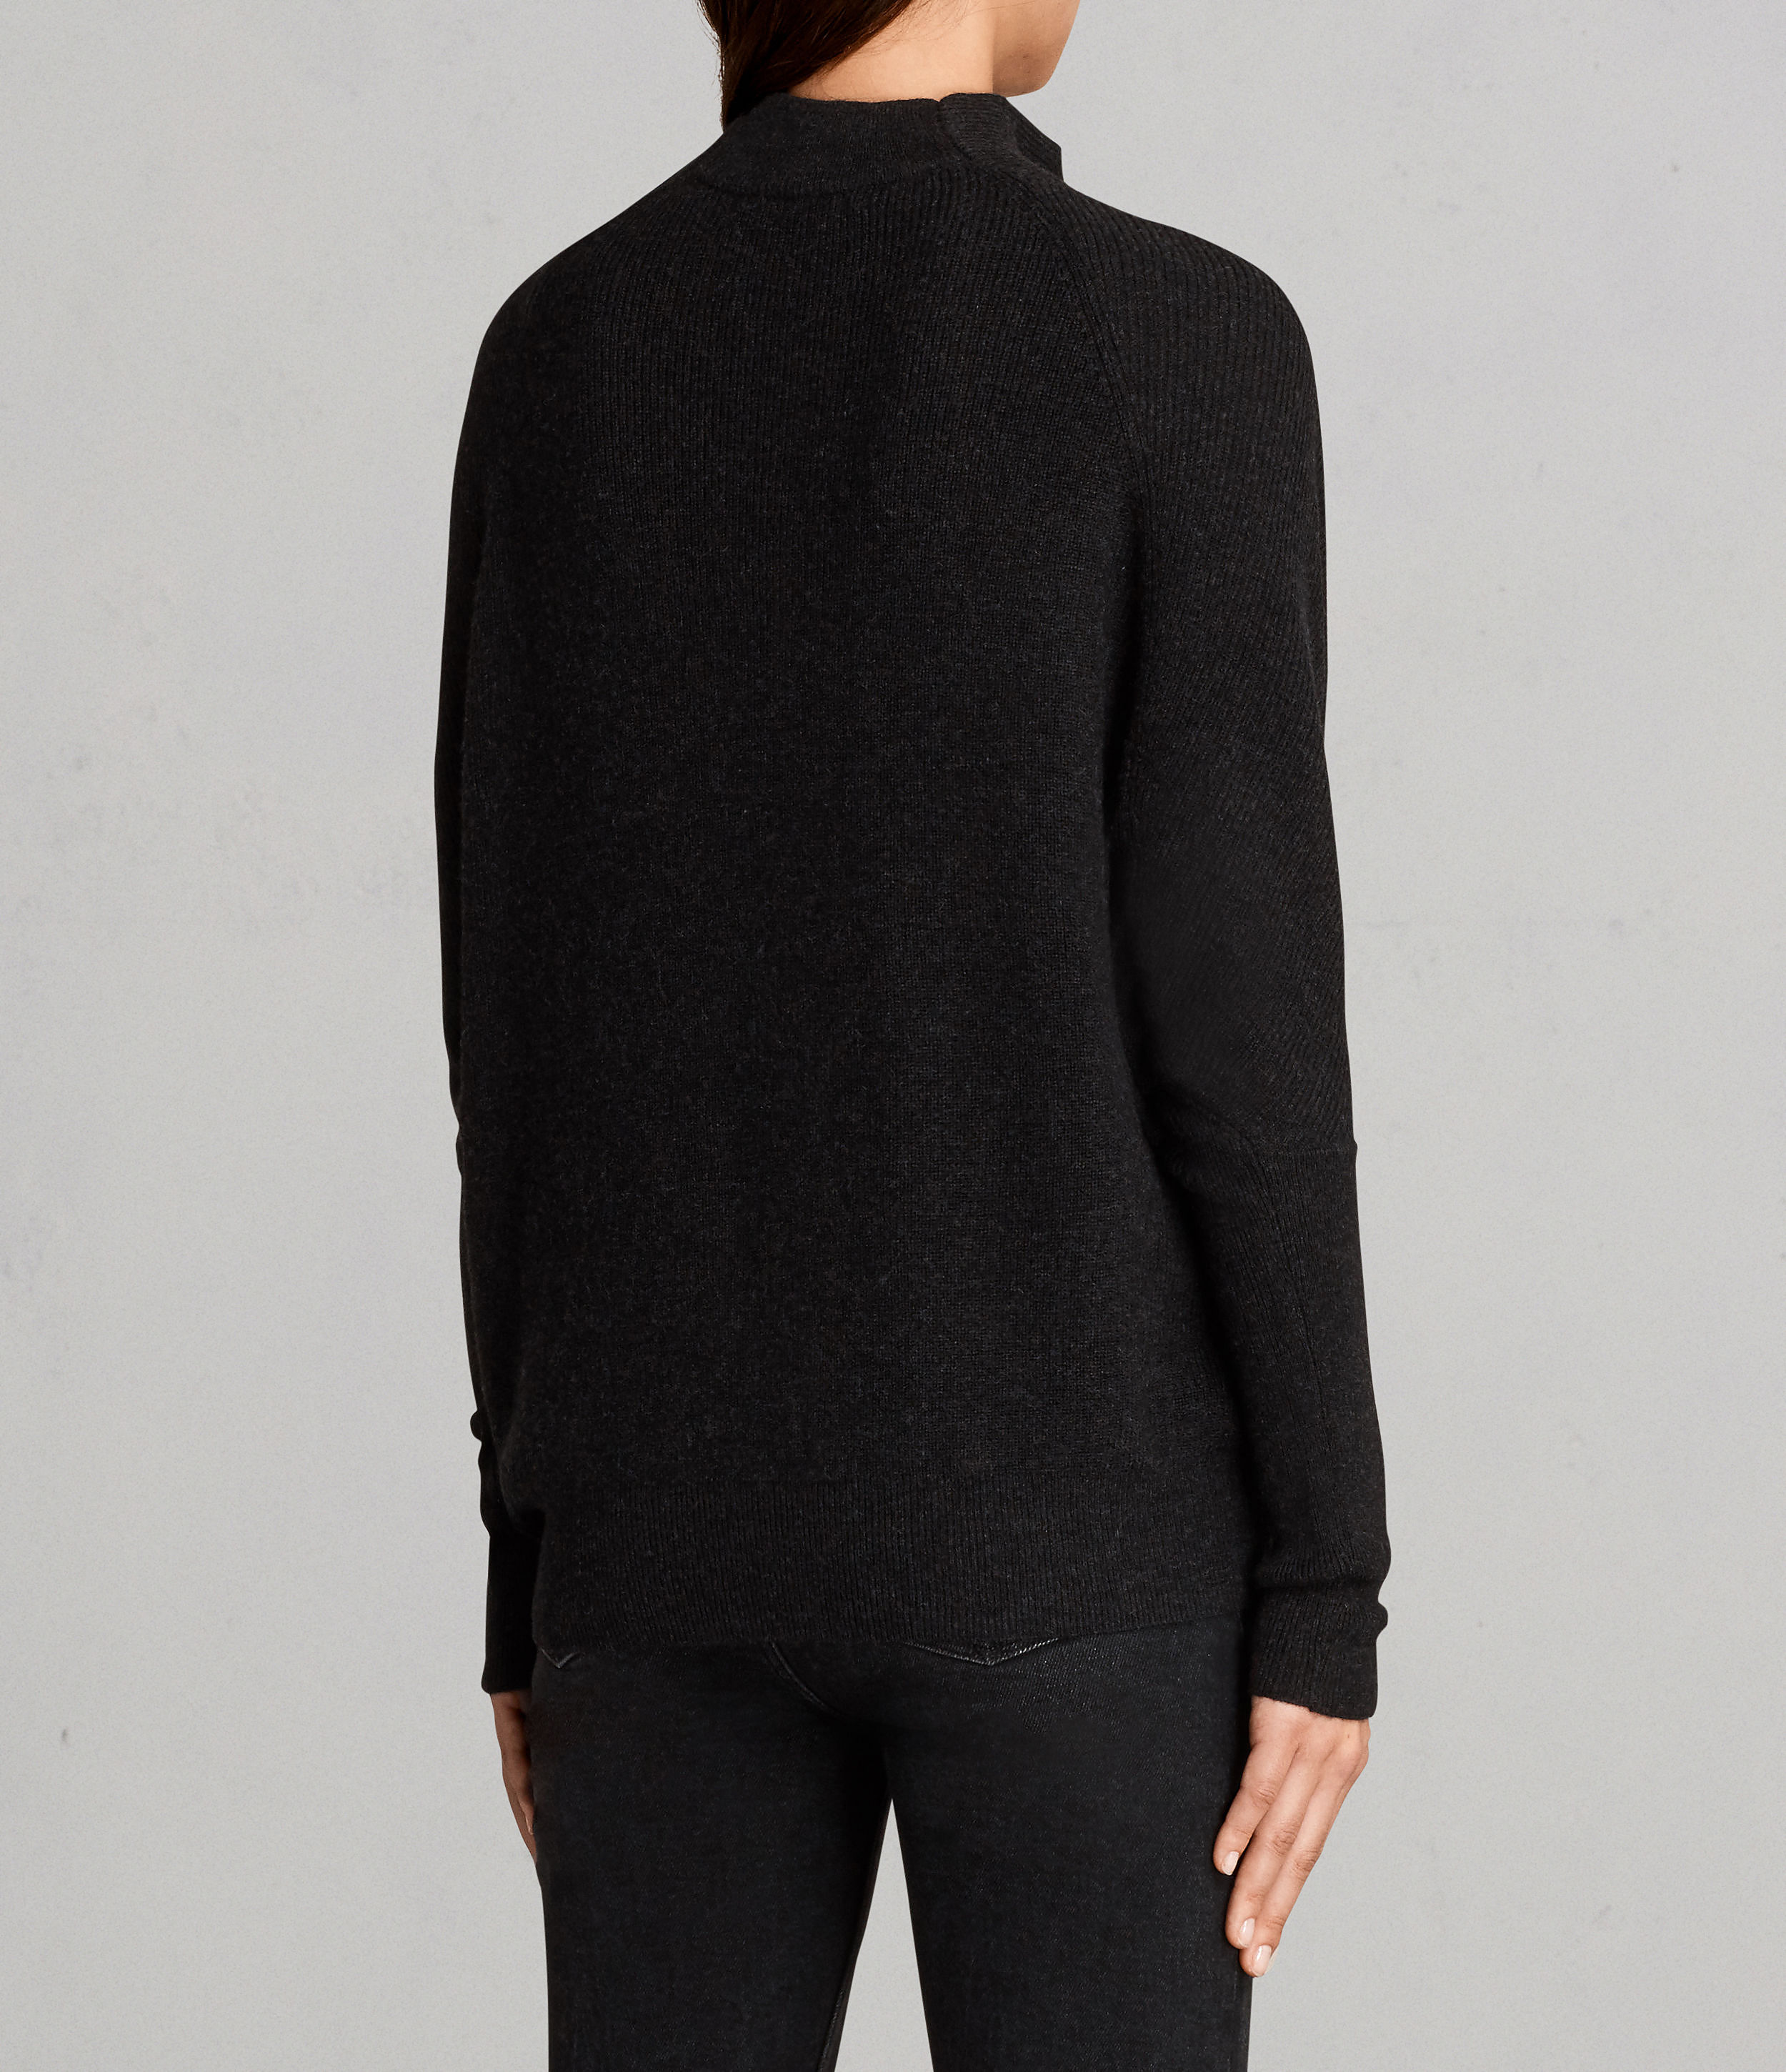 Black All Saints Ridley Sweater